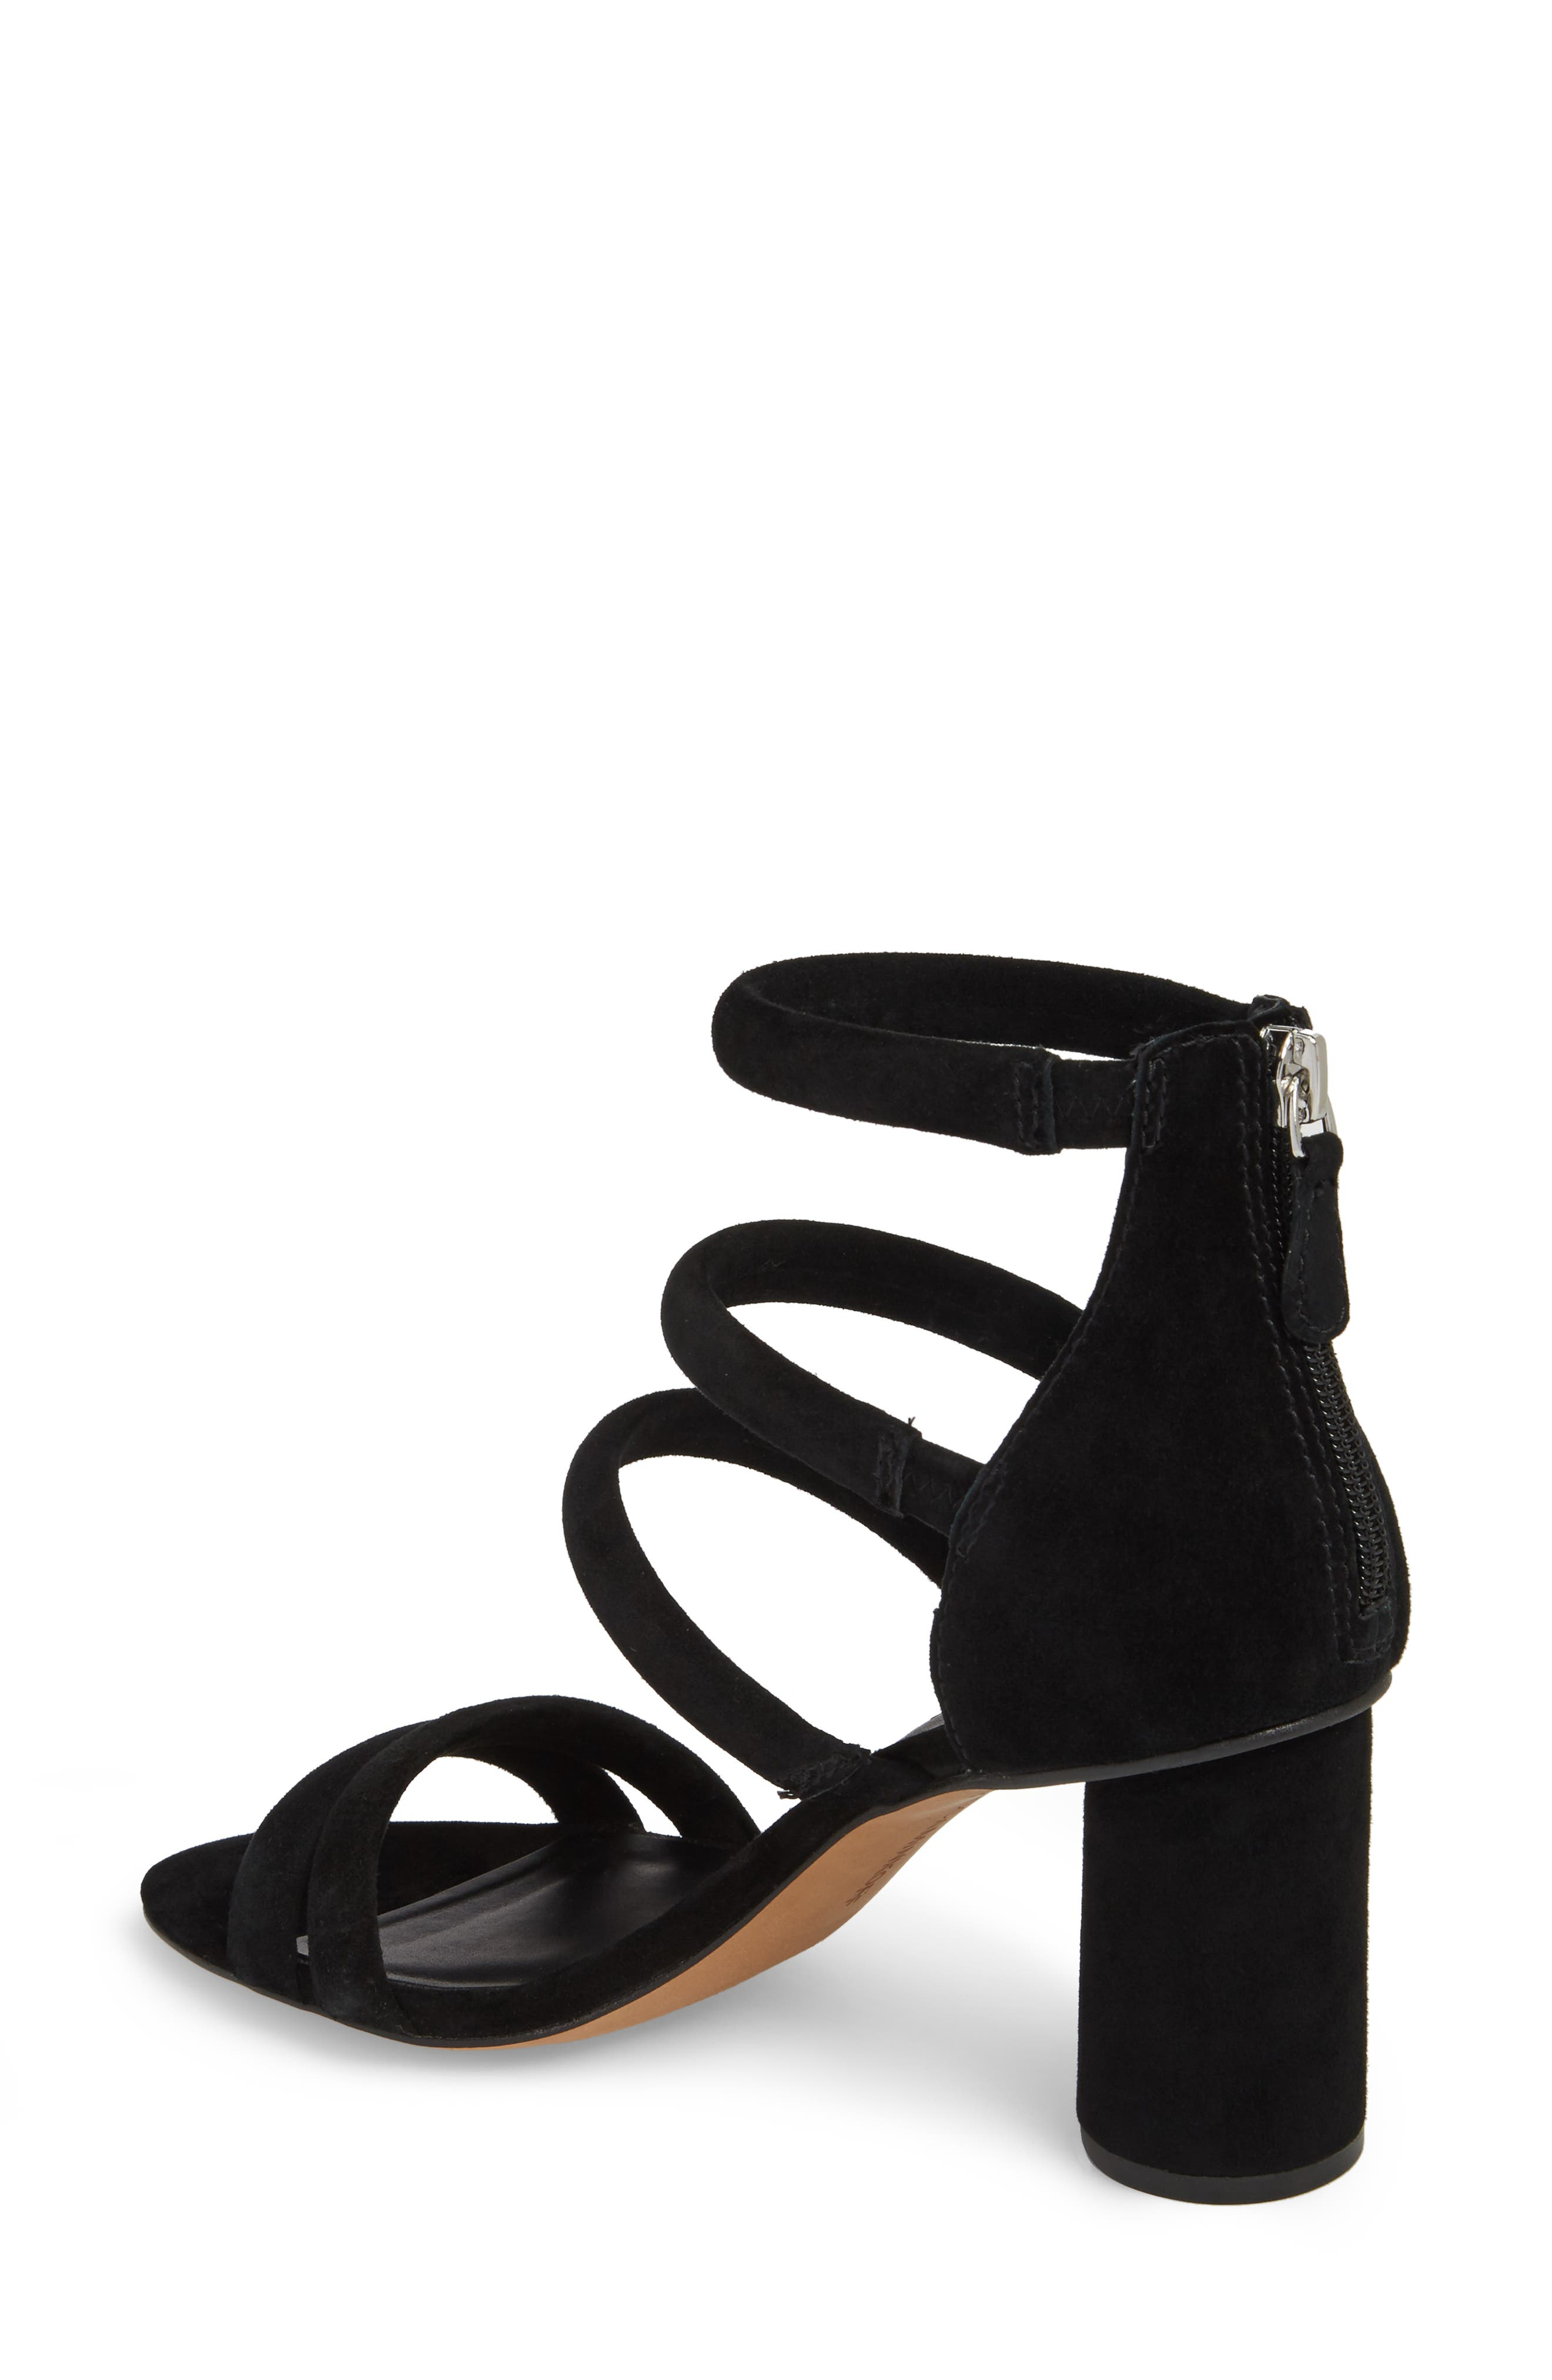 Andree Sandal,                             Alternate thumbnail 2, color,                             BLACK SUEDE